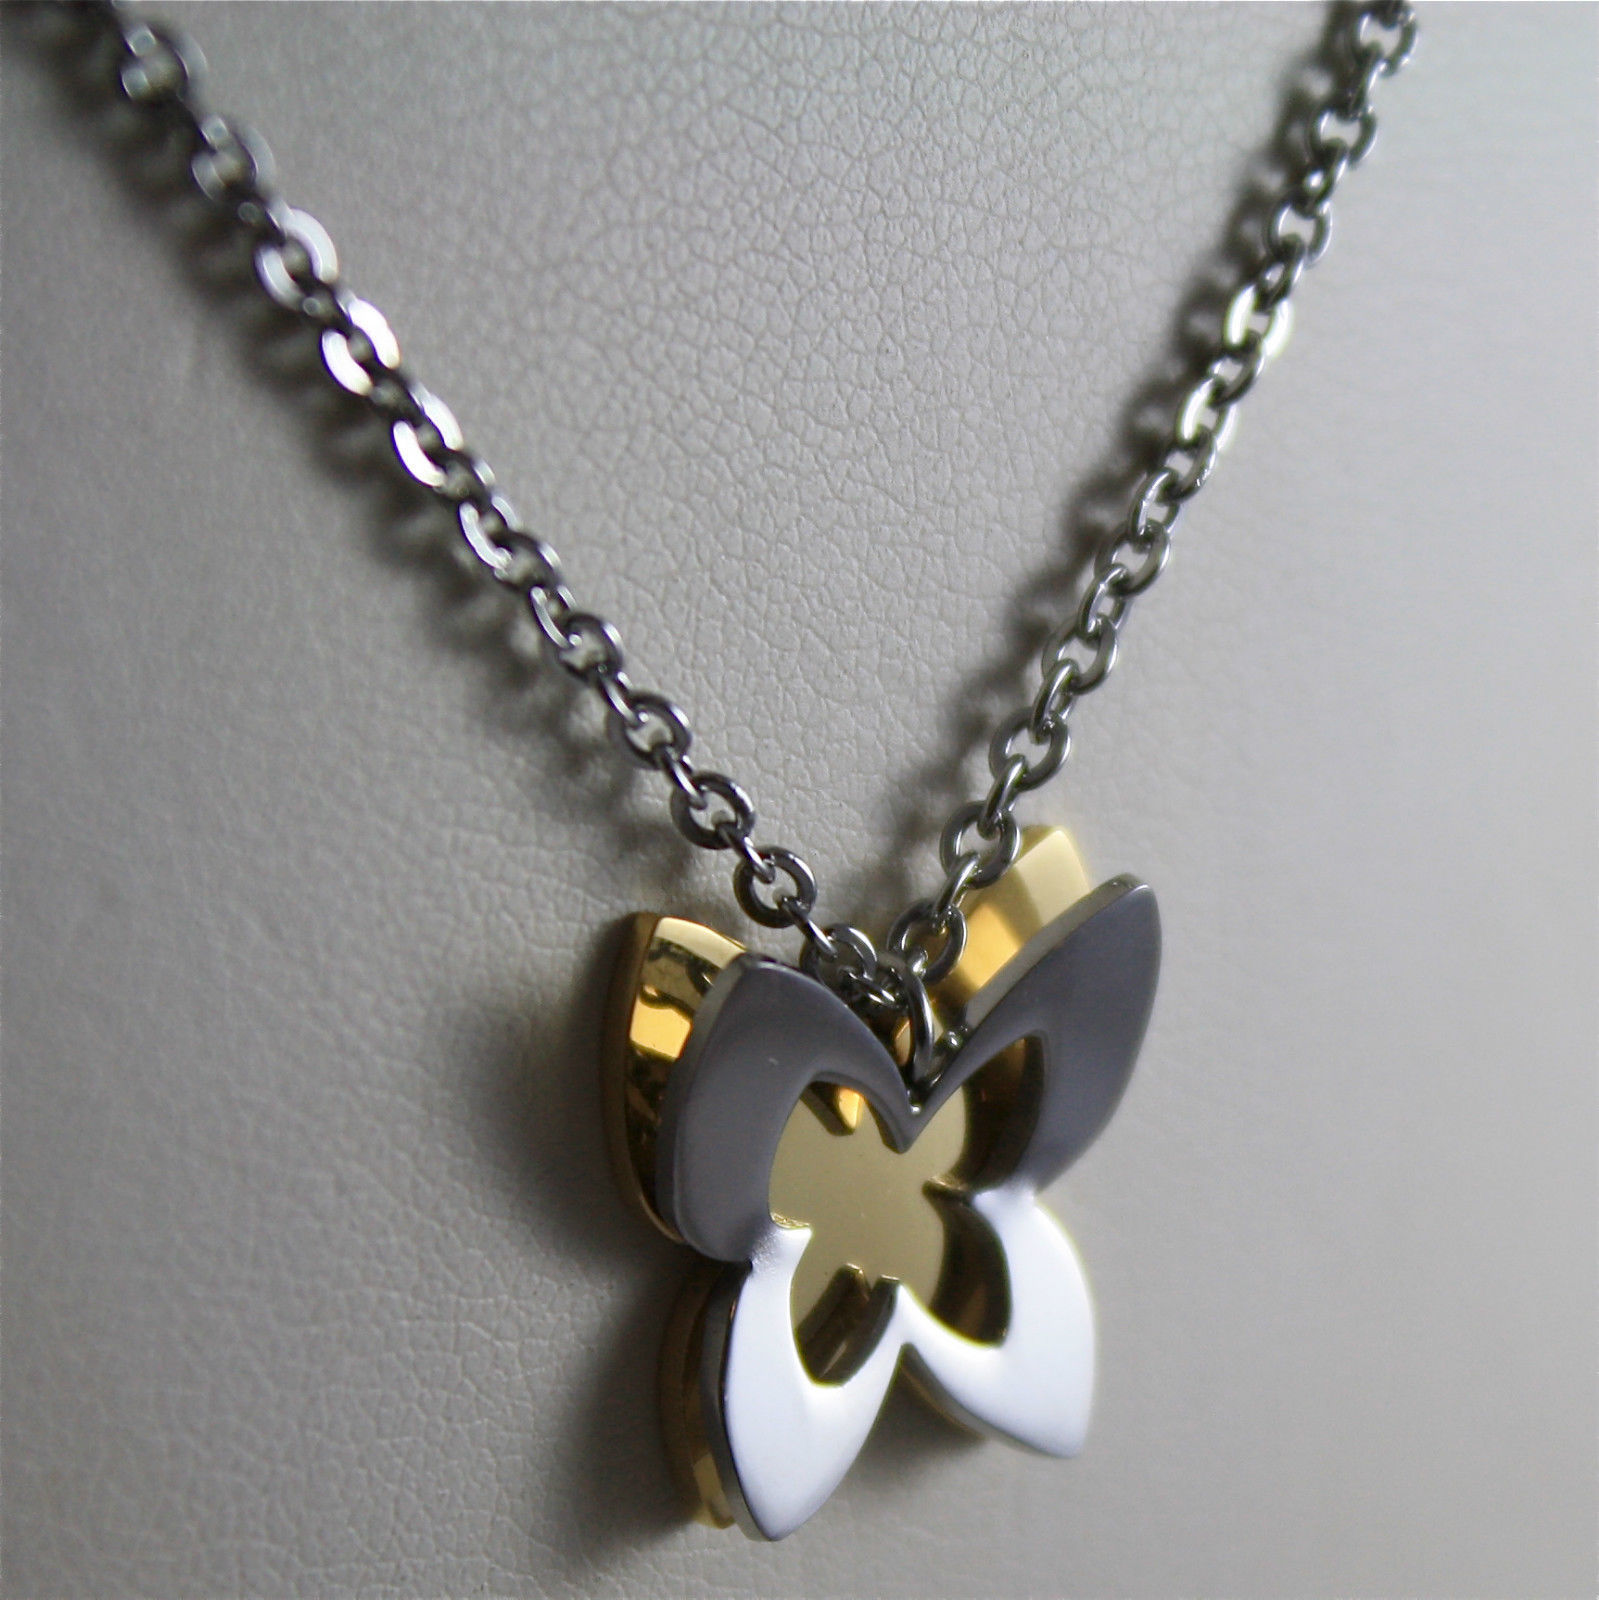 S'AGAPO' NECKLACE, 316L STEEL, BUTTERFLY, YELLOW GOLD PLATED.